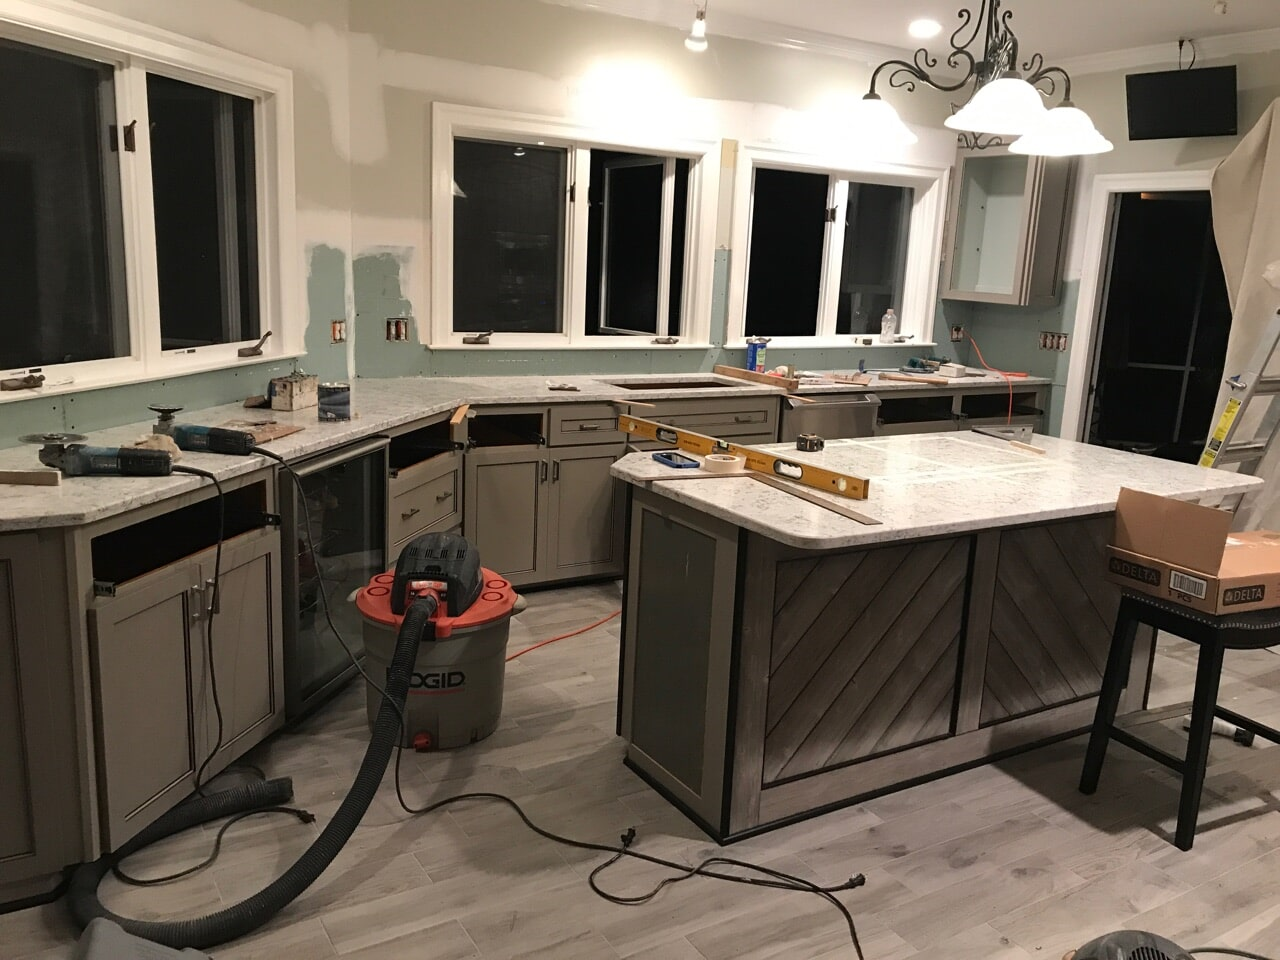 Kitchen cabinet refacing in Roswell, GA by Select Floors